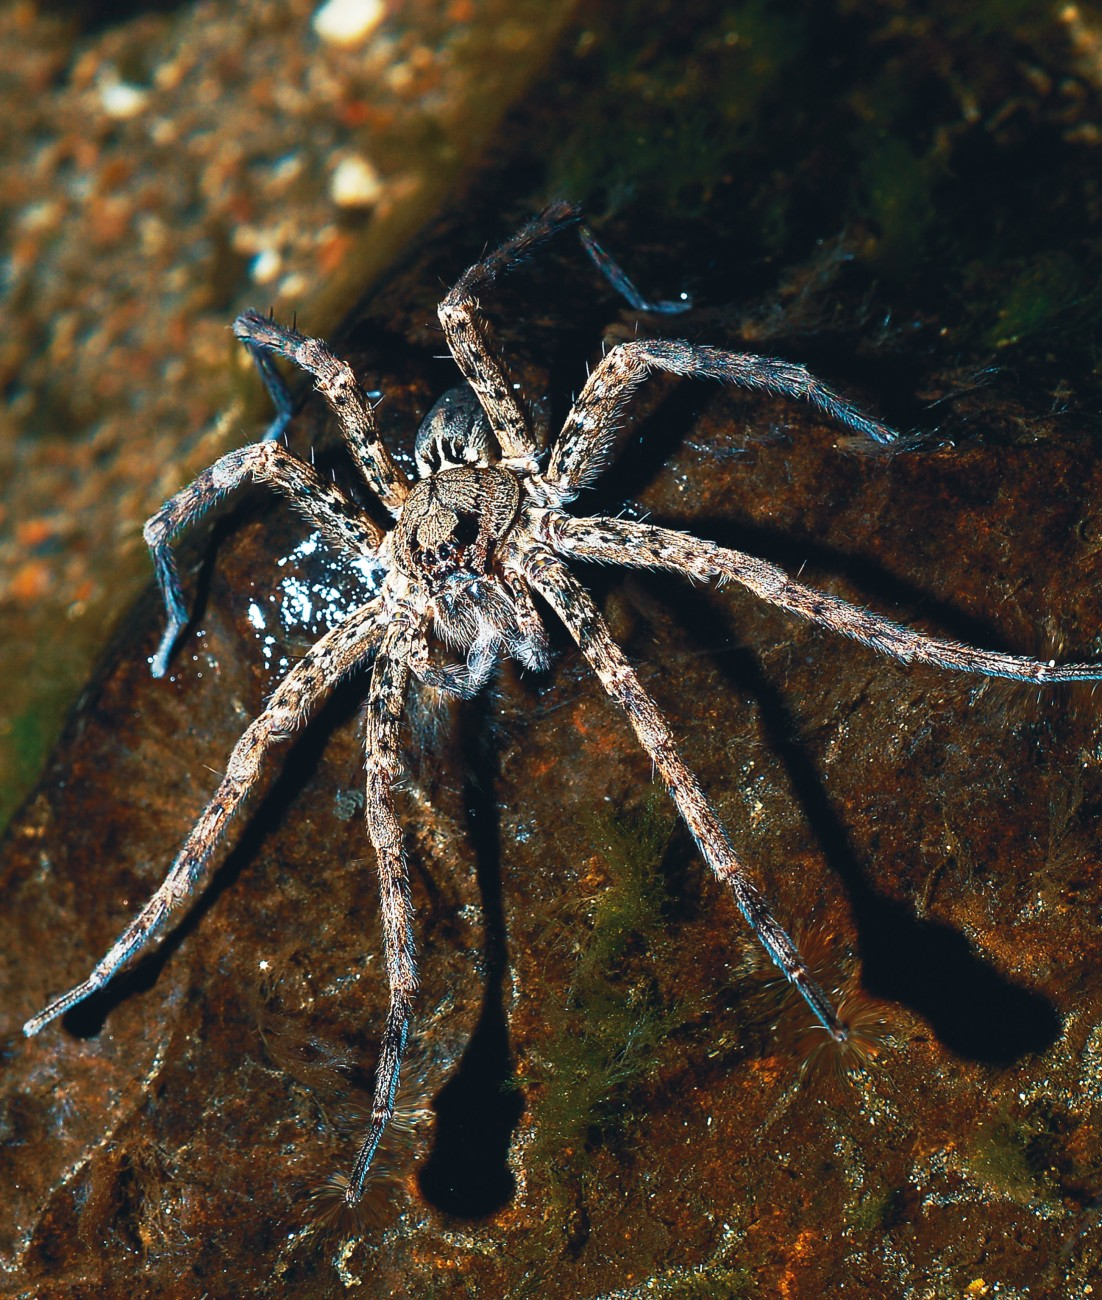 A typical Dolomedes fishing pose has front legs on the water surface while the rear legs anchor her to the bank. New Zealand species mainly eat aquatic insects but will also take fish rarely, while overseas species catch tadpoles and even adult frogs.